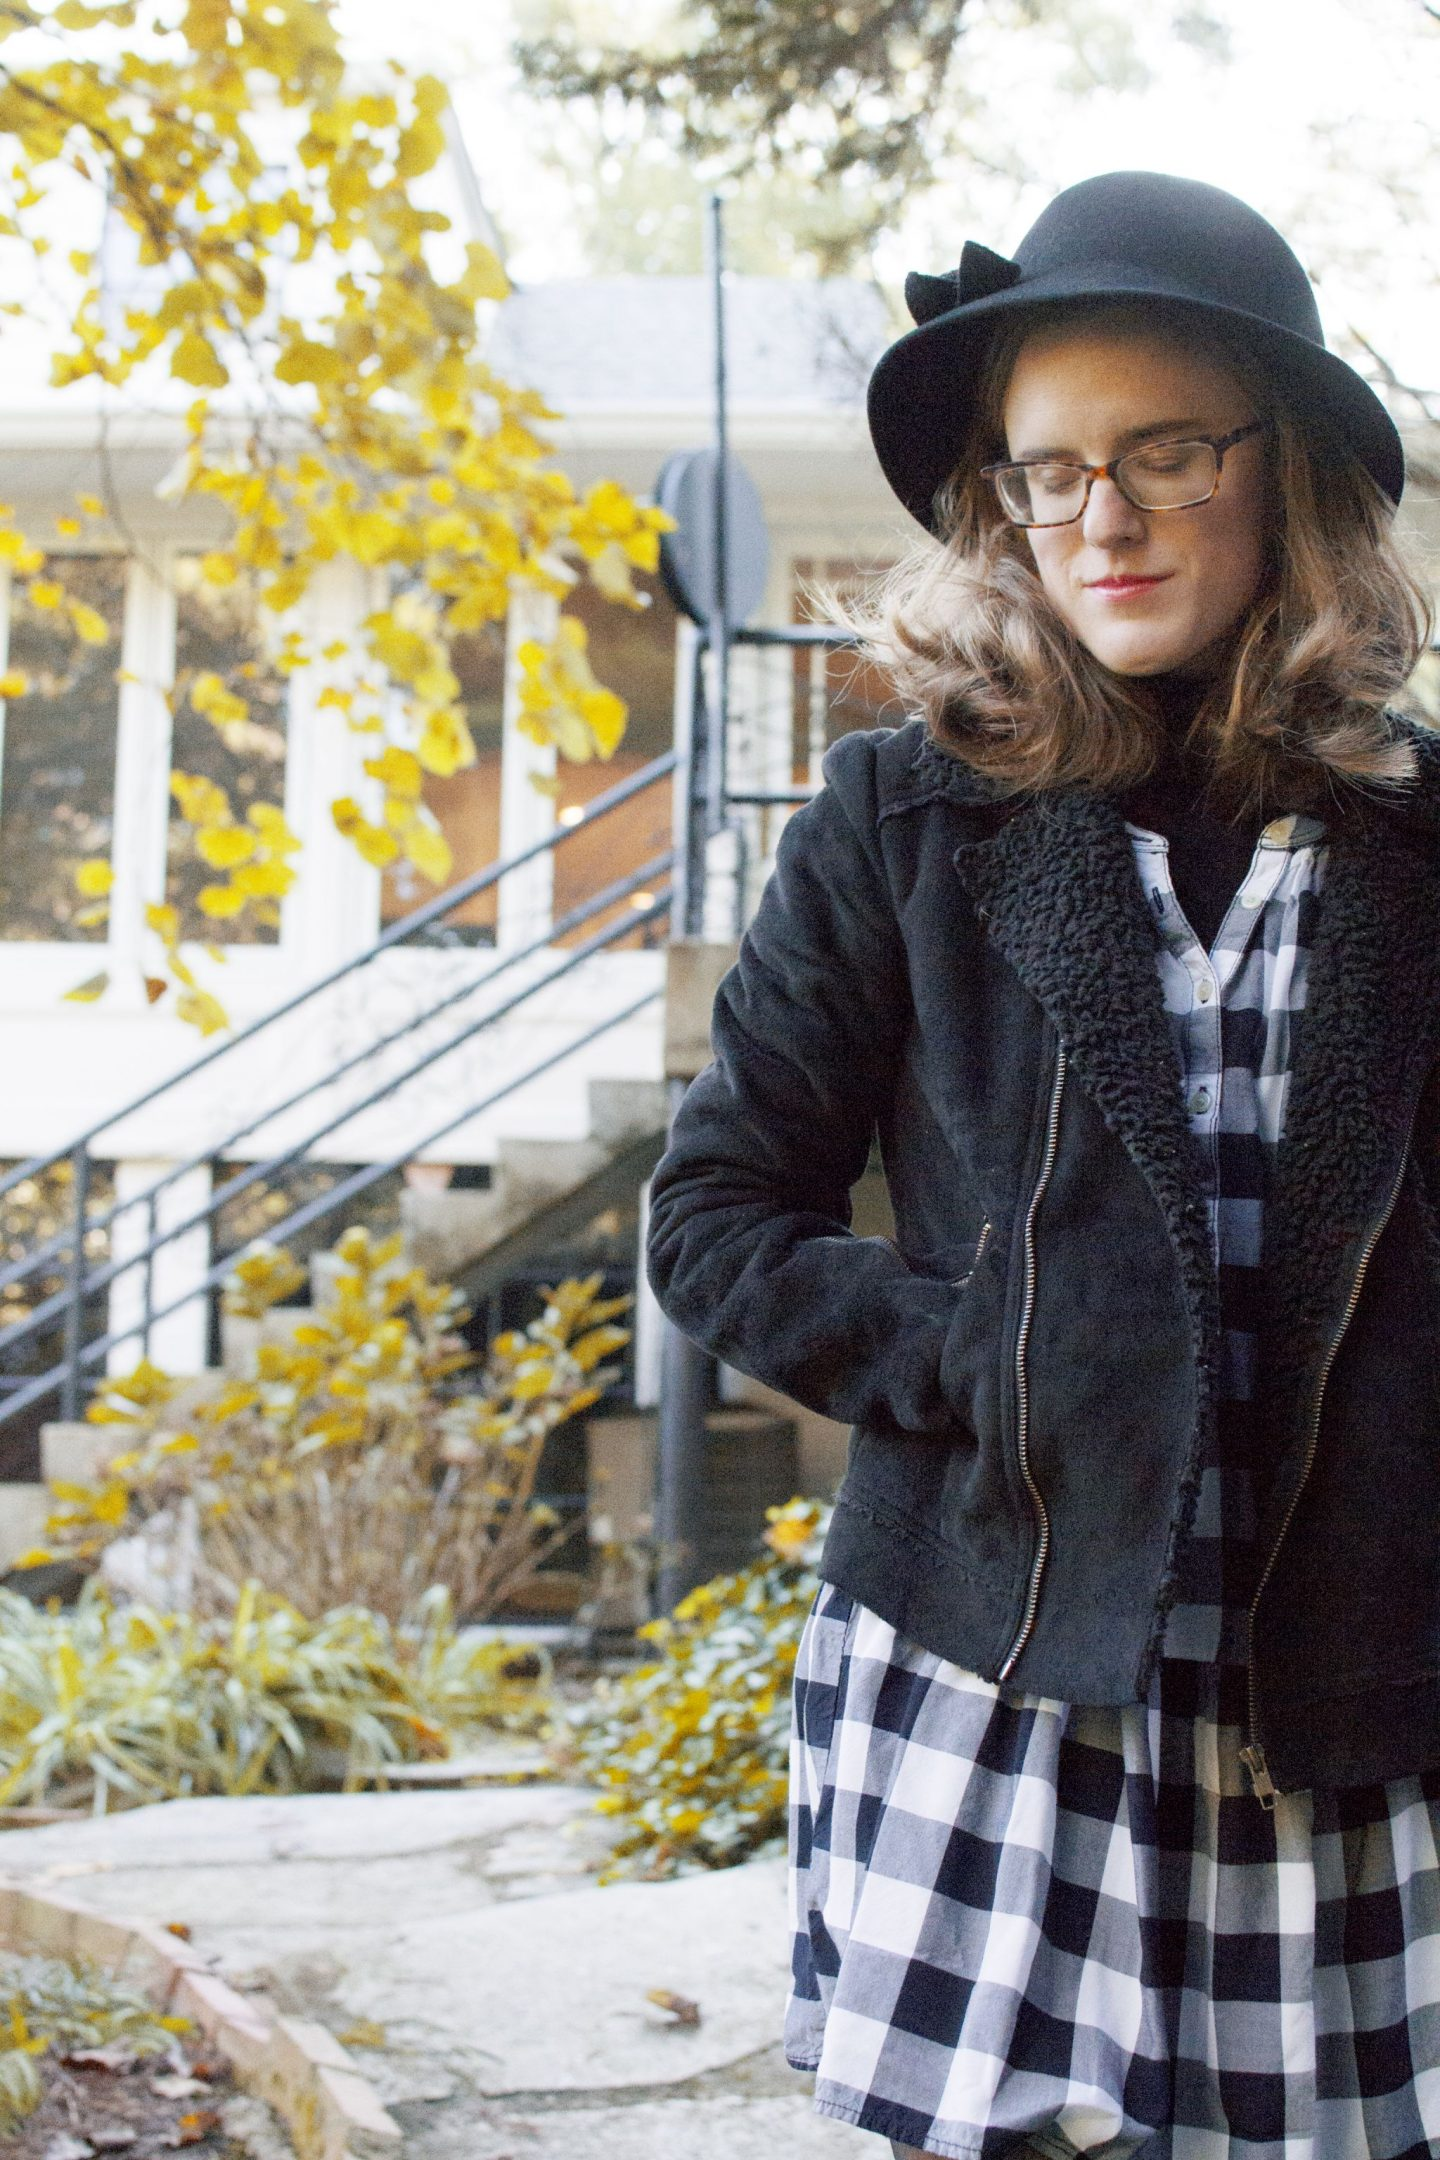 Styling Gingham for Fall